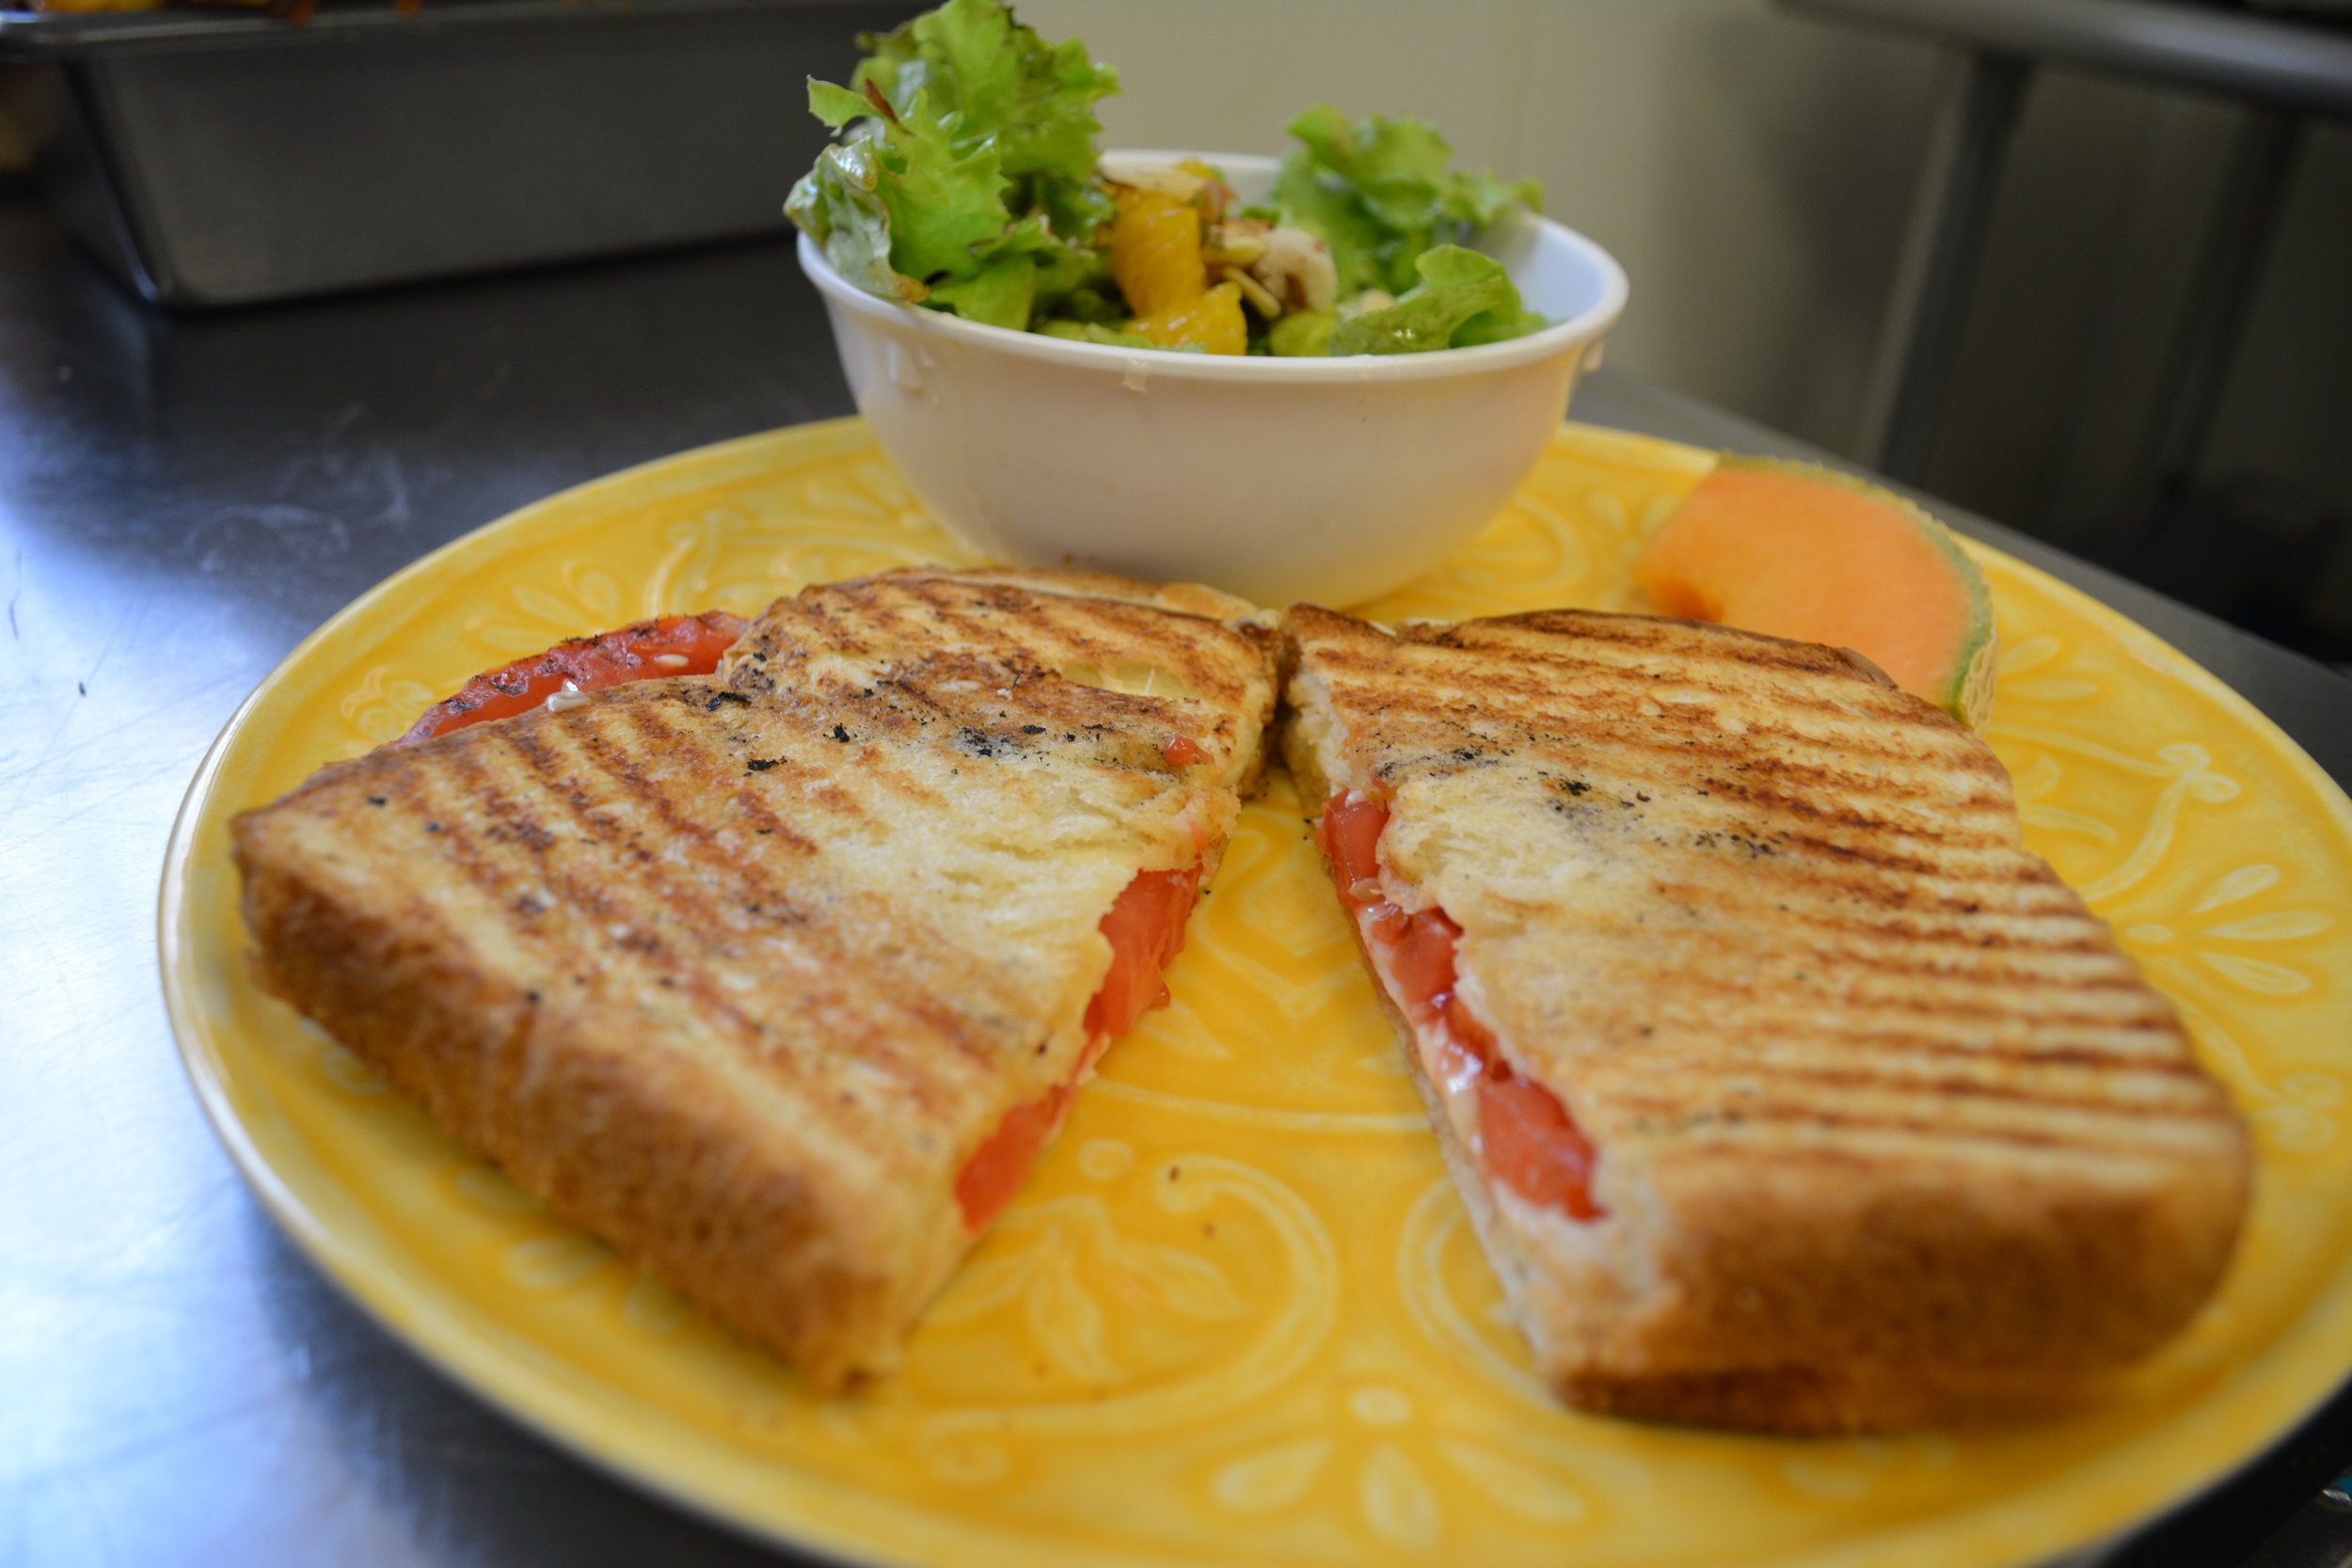 Baba's Grilled cheese - Melted American cheese and slices of a red ripe tomato